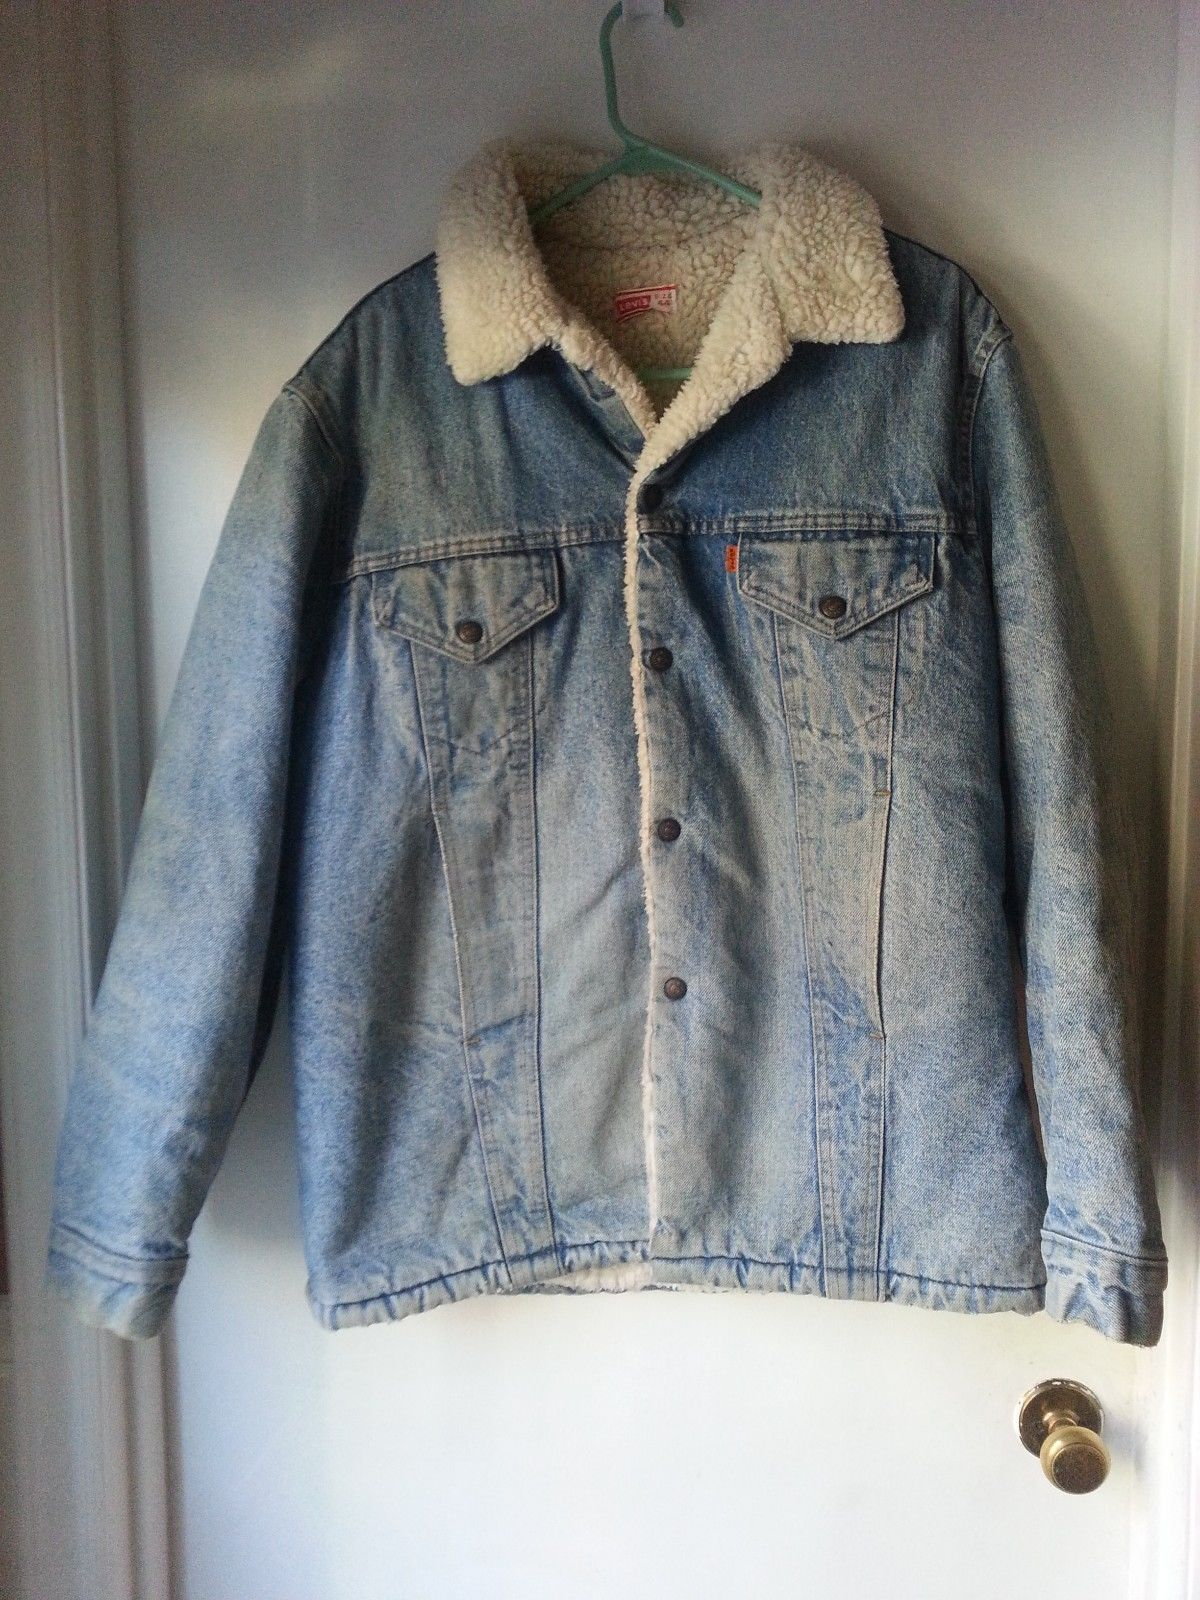 90b936a6 Vintage LEVI'S Denim Sherpa Fleece lined Trucker Denim Jacket Men's Size 44  Priced at $49.09